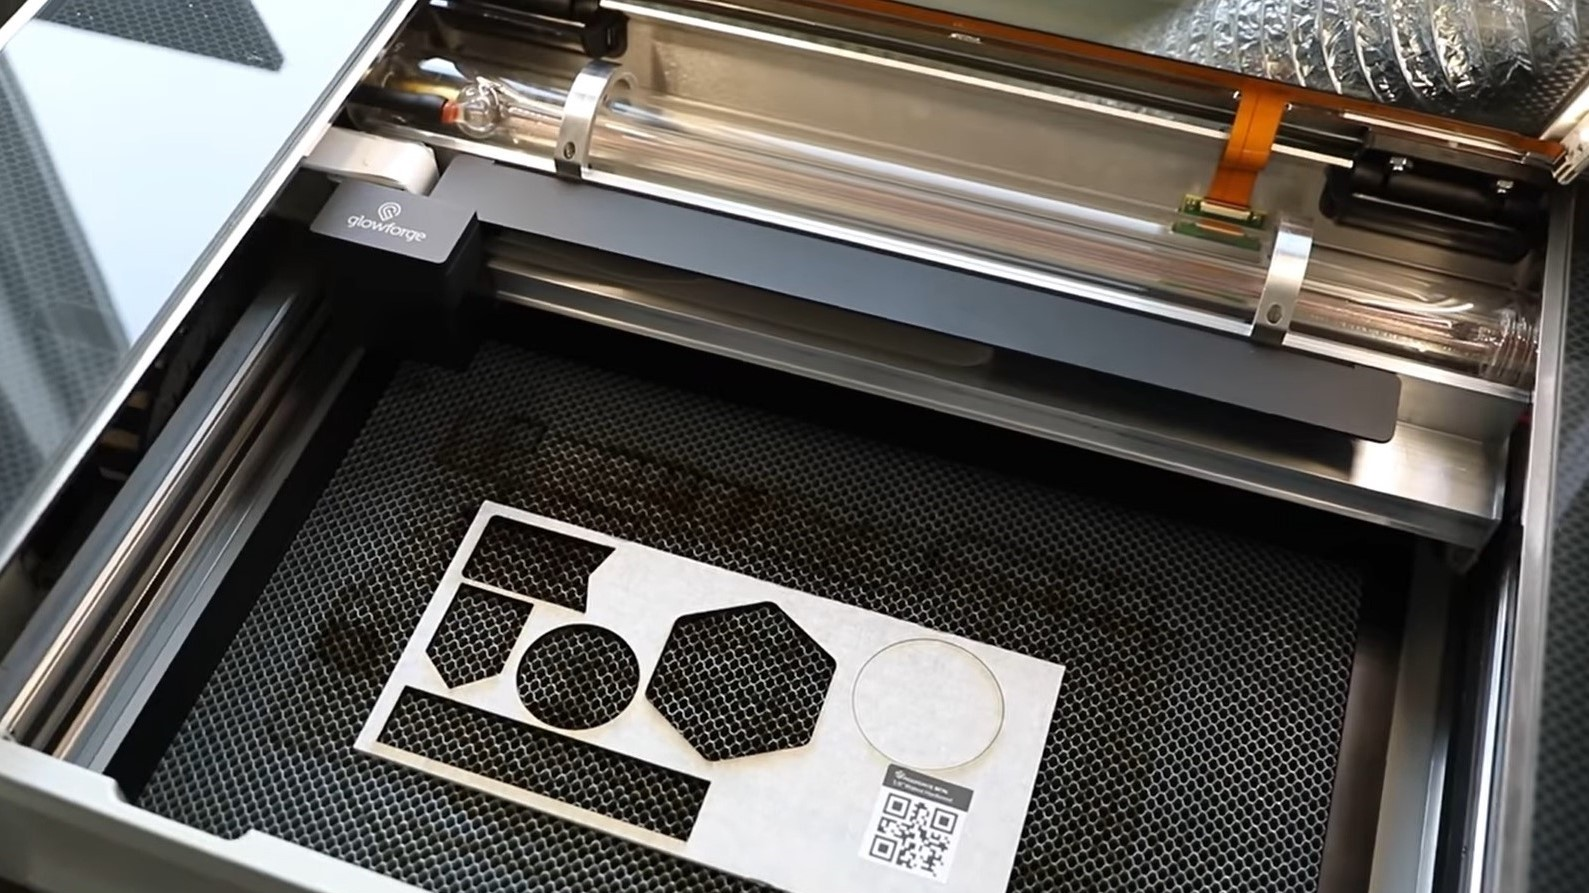 Glowforge Projects: 10+ Cool Ideas for Your Laser Cutter | All3DP